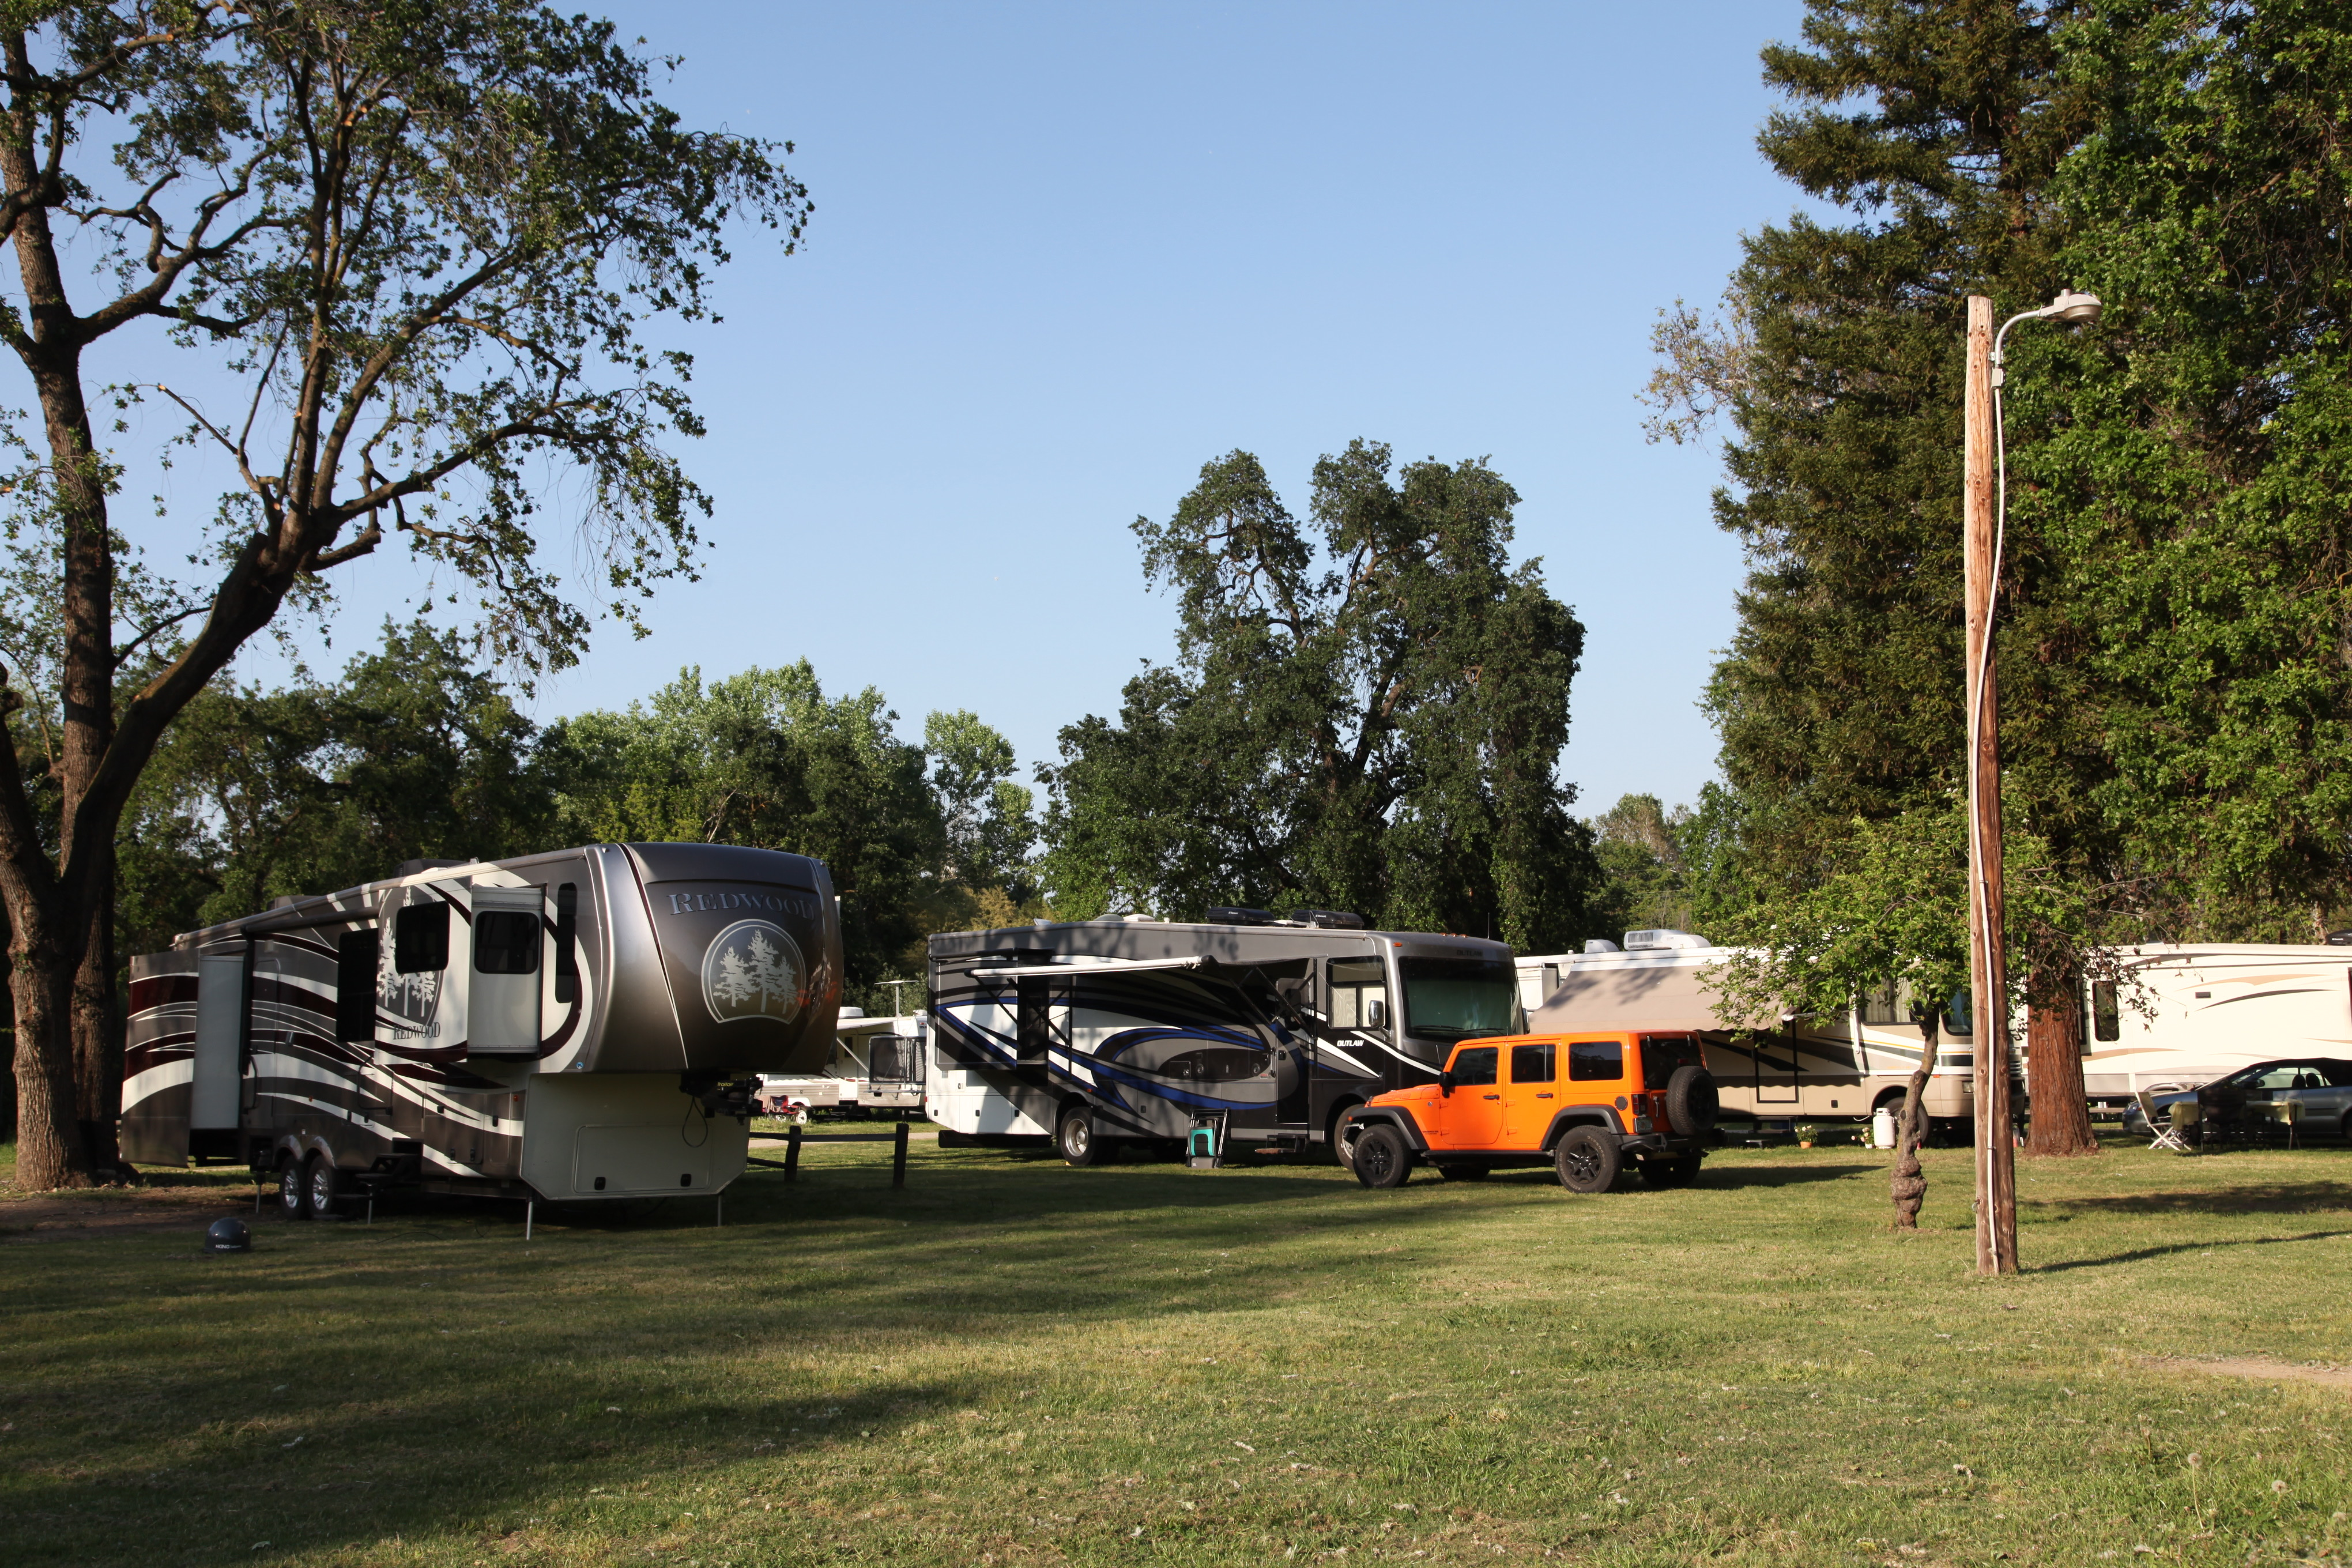 Riverbend Rv Park early afternoon